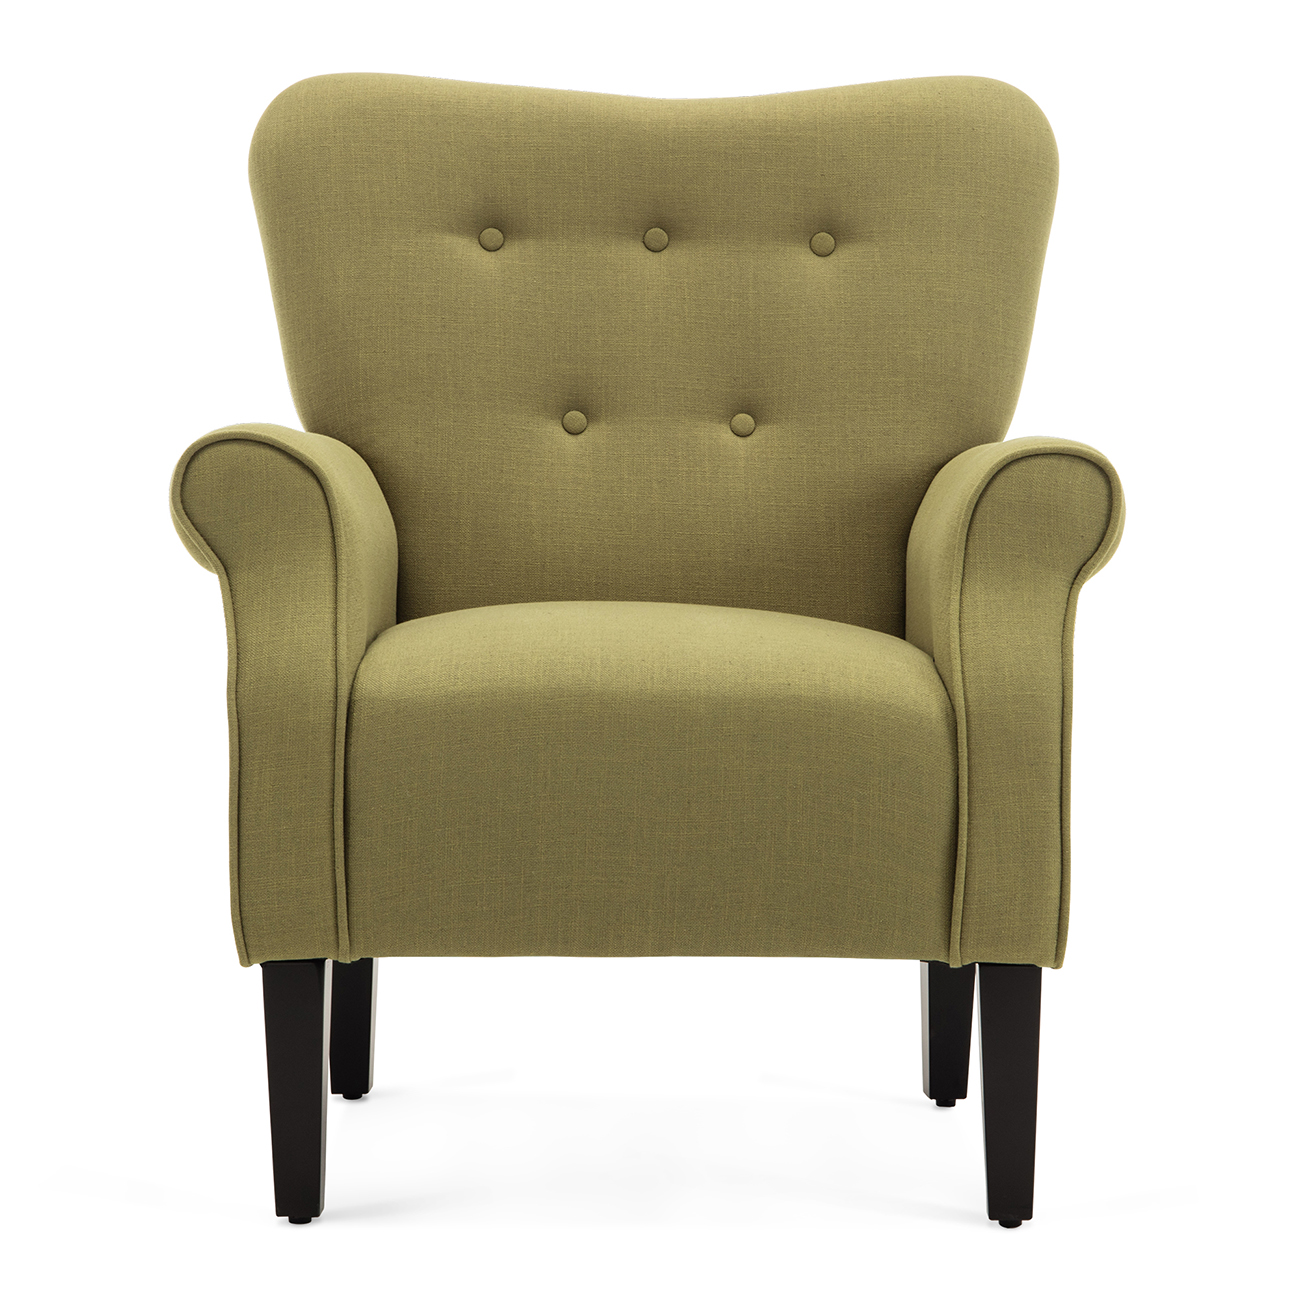 Accent Arm Chairs Details About Fabric Club Chair Accent Arm Chair Upholstered Single Sofa Living Room Furniture